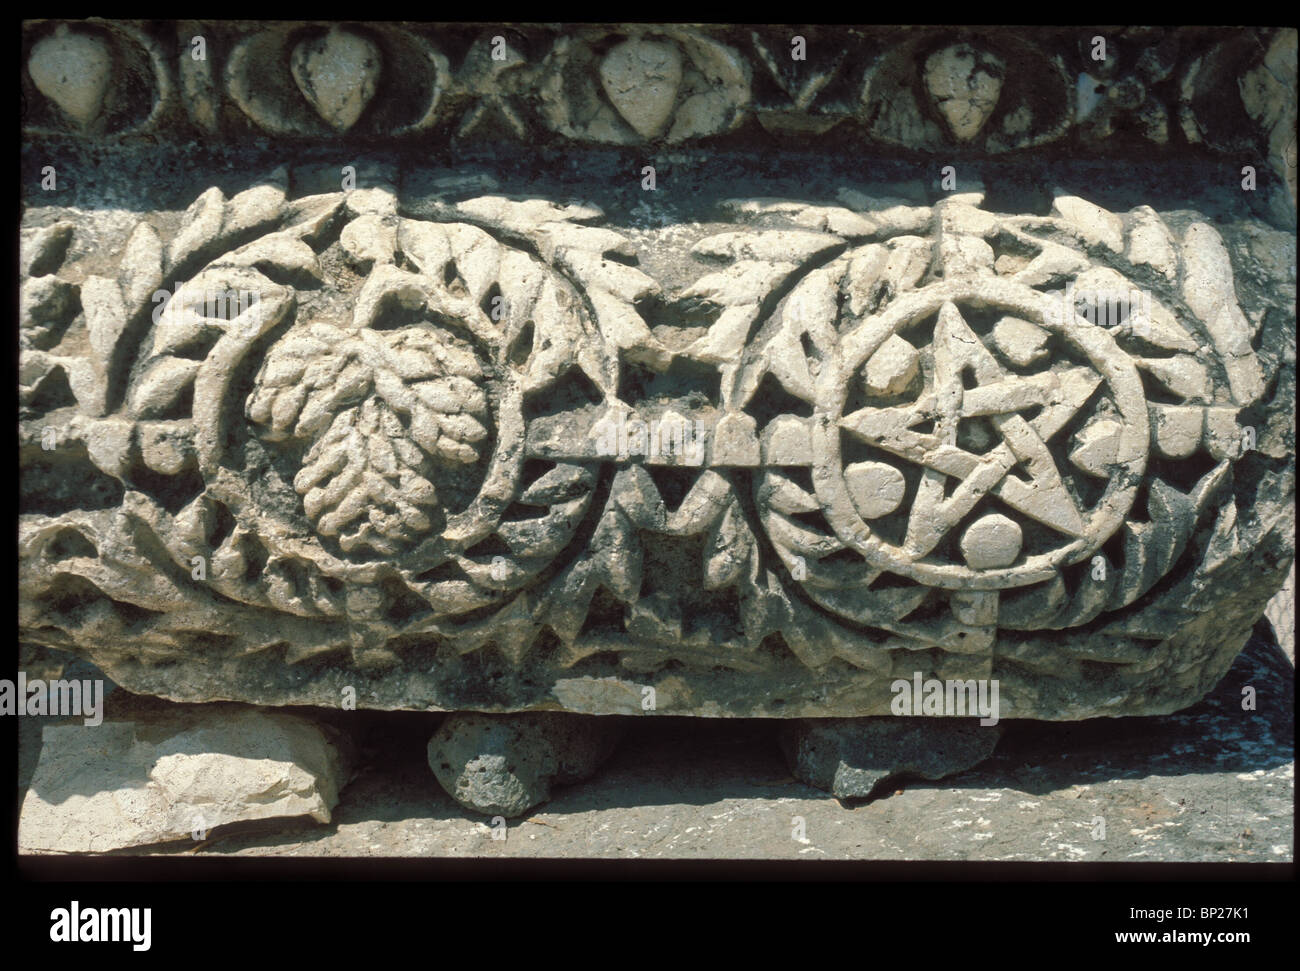 888. CAPERNAUM - ARCHITECTURAL DETAILS, AND STONE CARVINGS FROM THE ANCIENT SYNAGOGUE - Stock Image